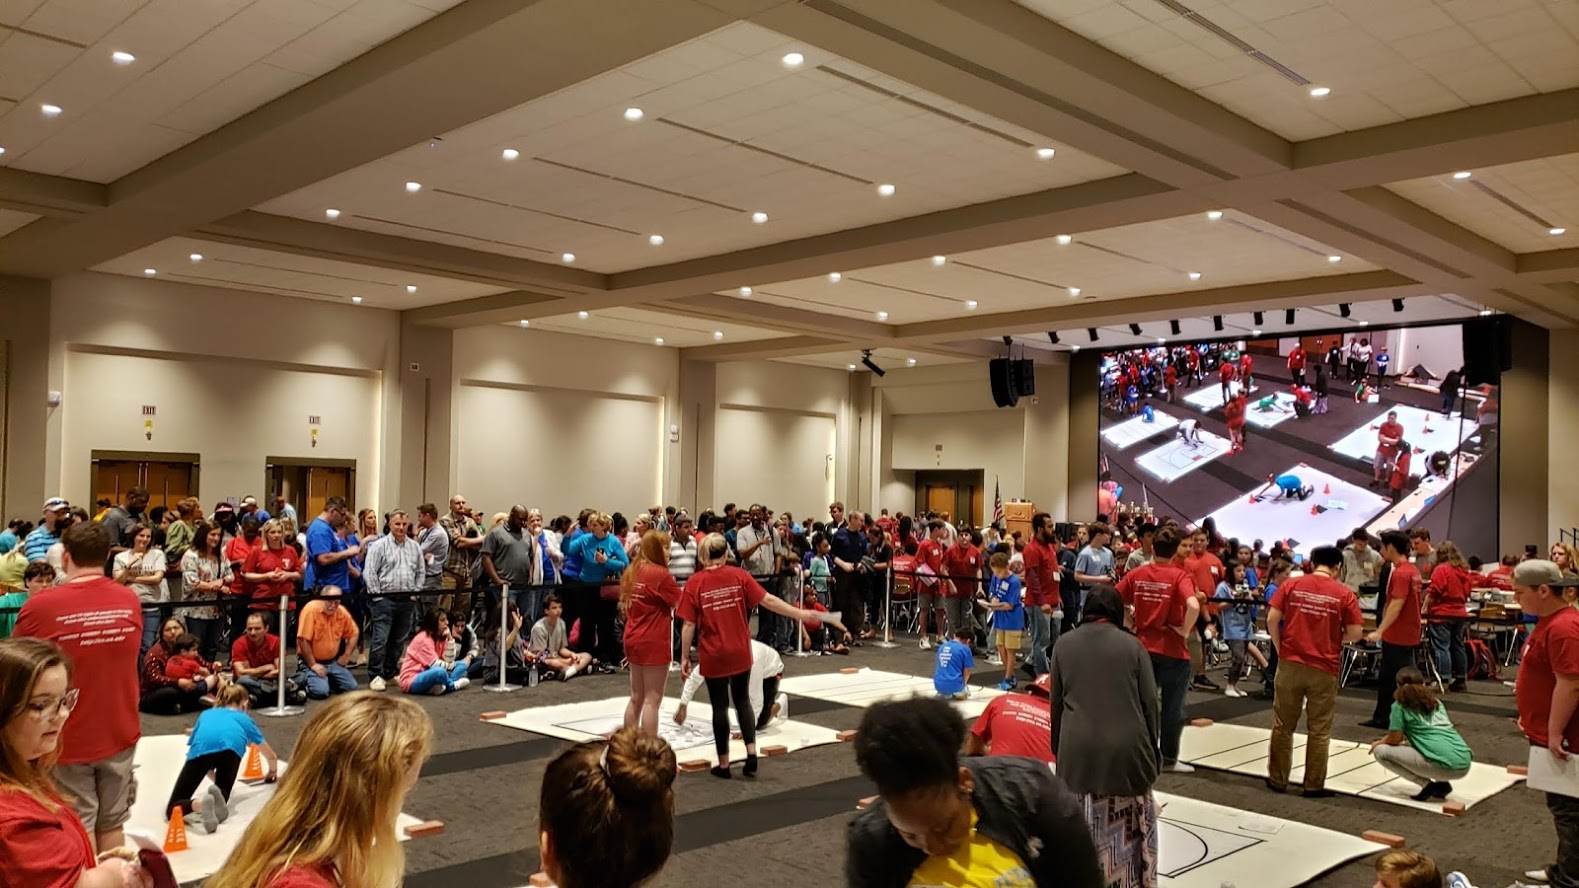 Huge room filled with kids and computer science students having a robotics competition